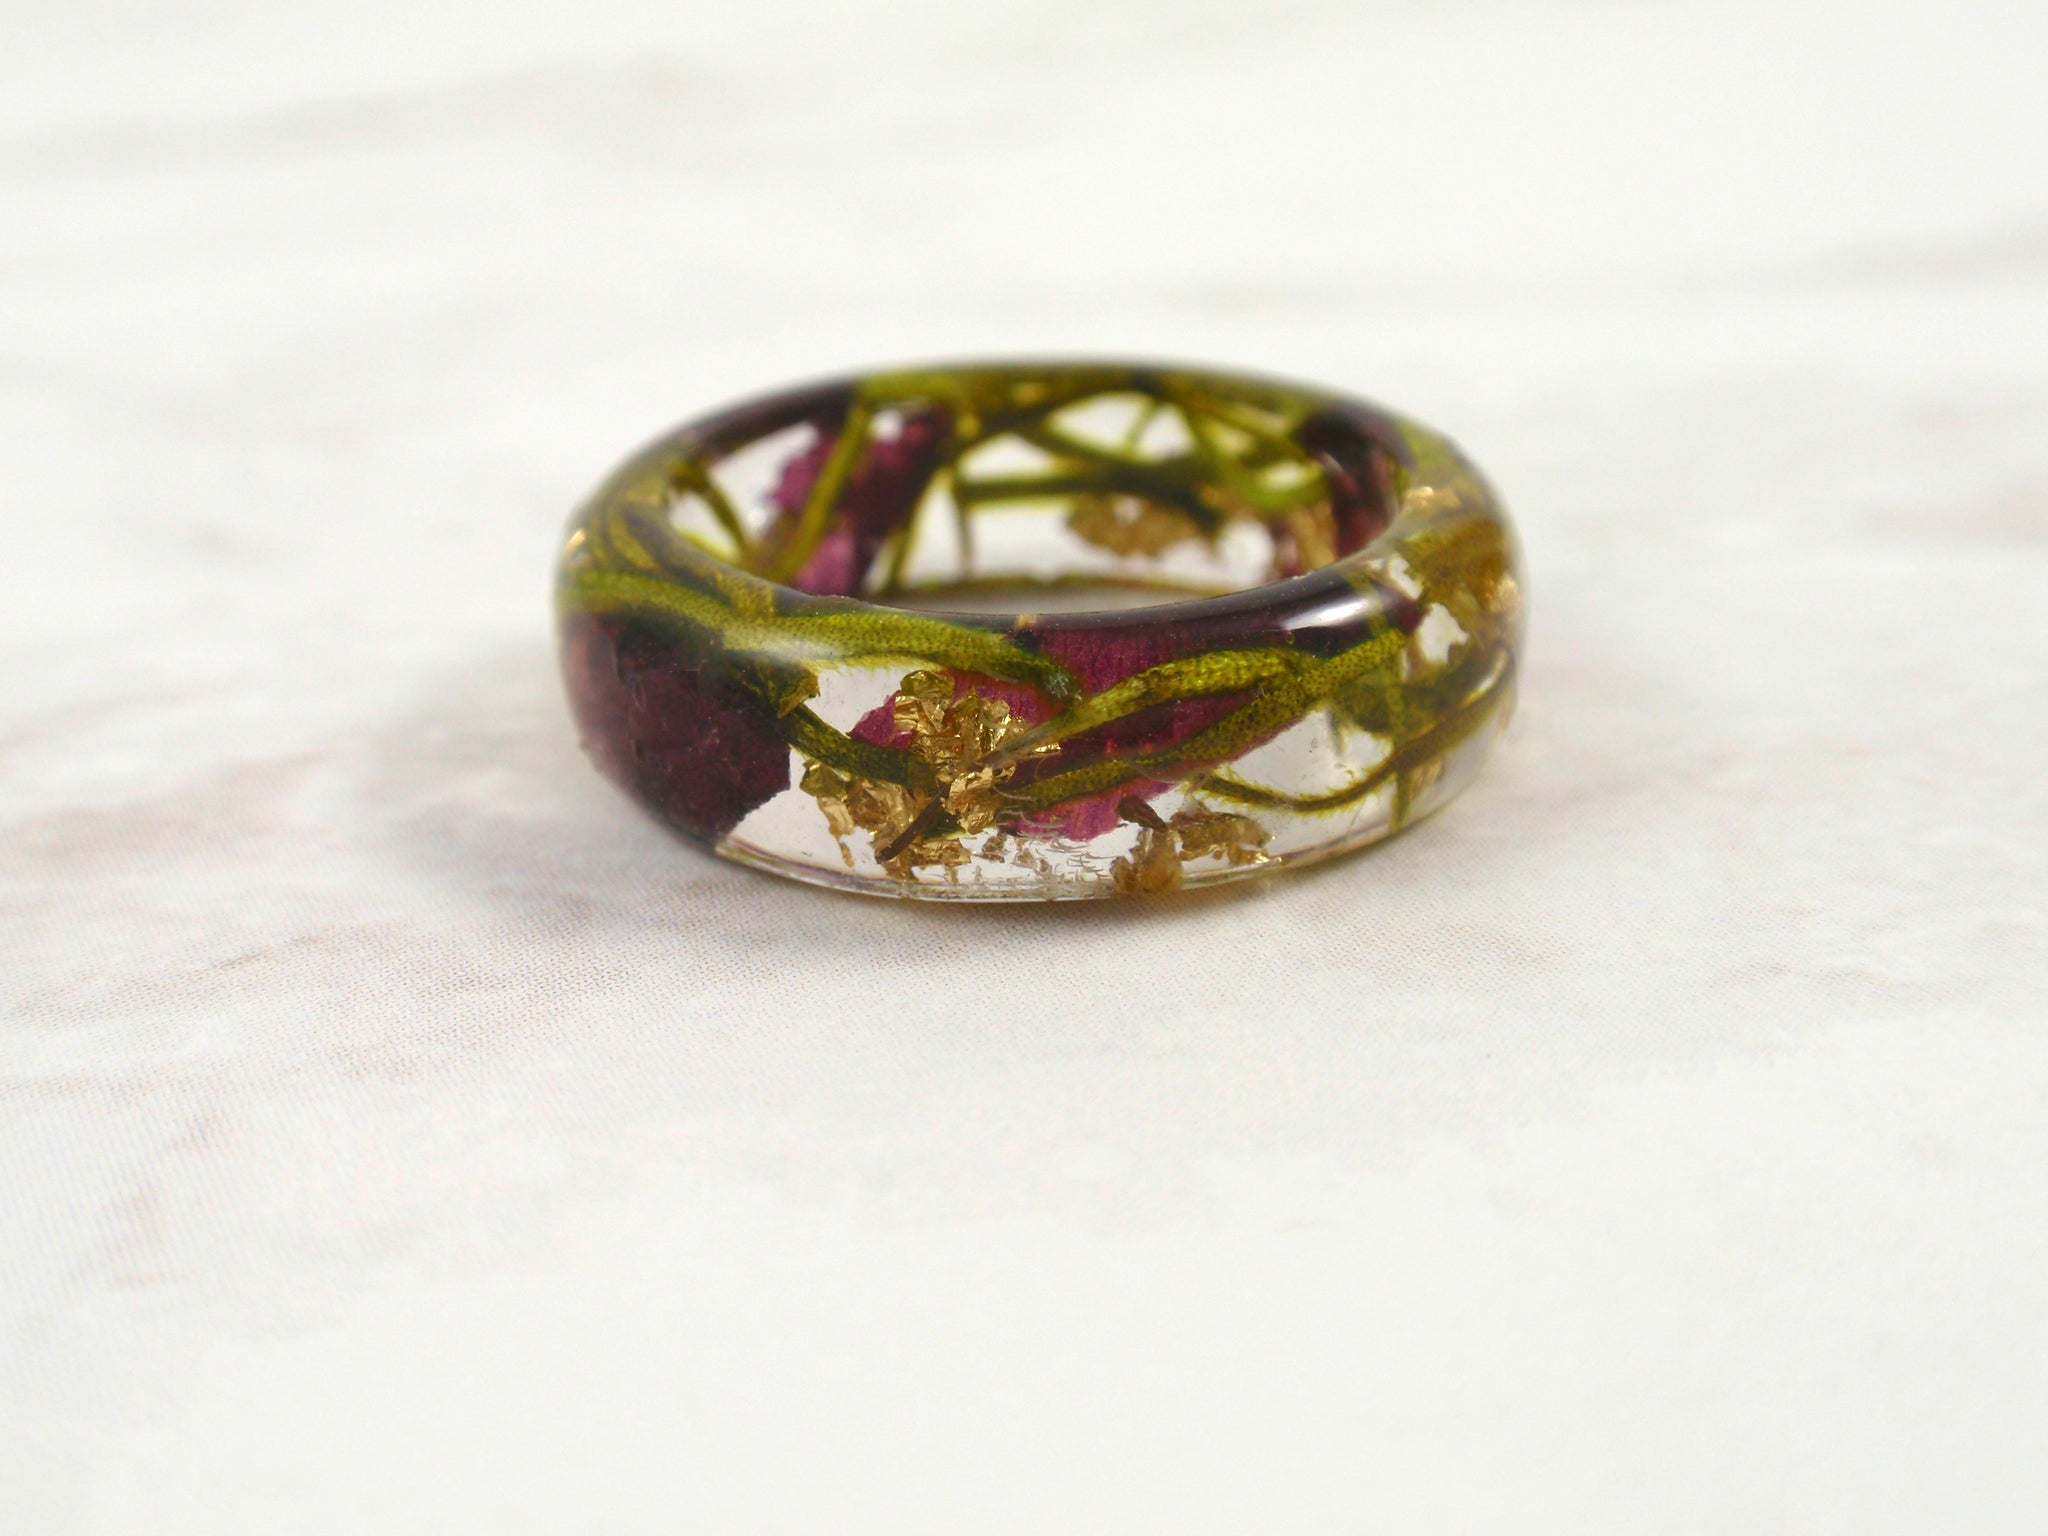 Rose petals nature ring round band ring